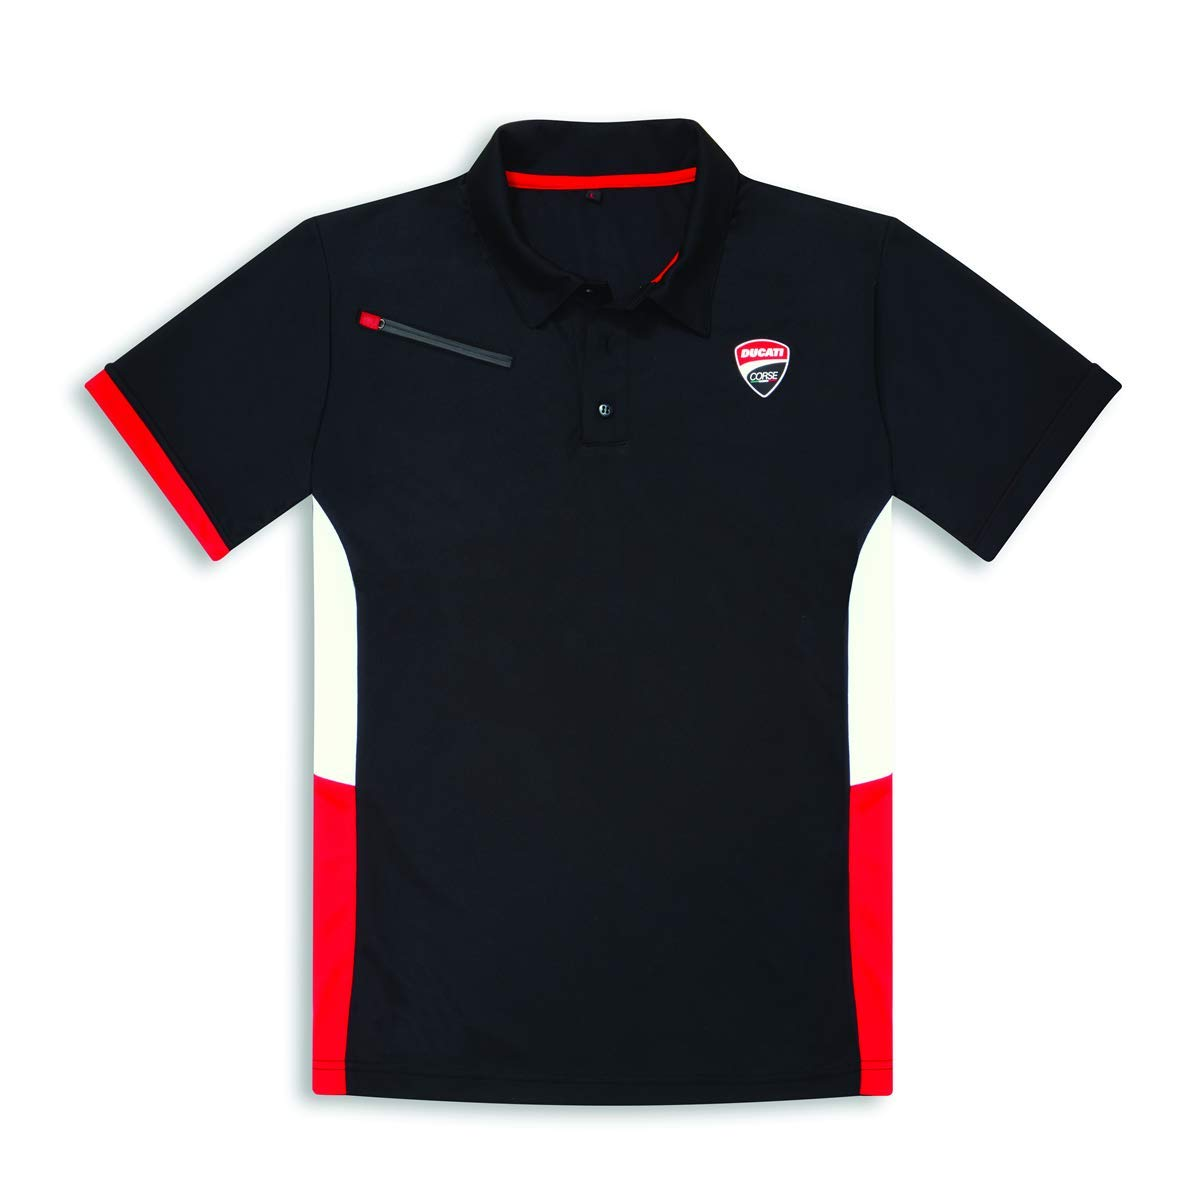 Ducati DC Power 19 Short-sleeved polo shirt 987699046 (XL)